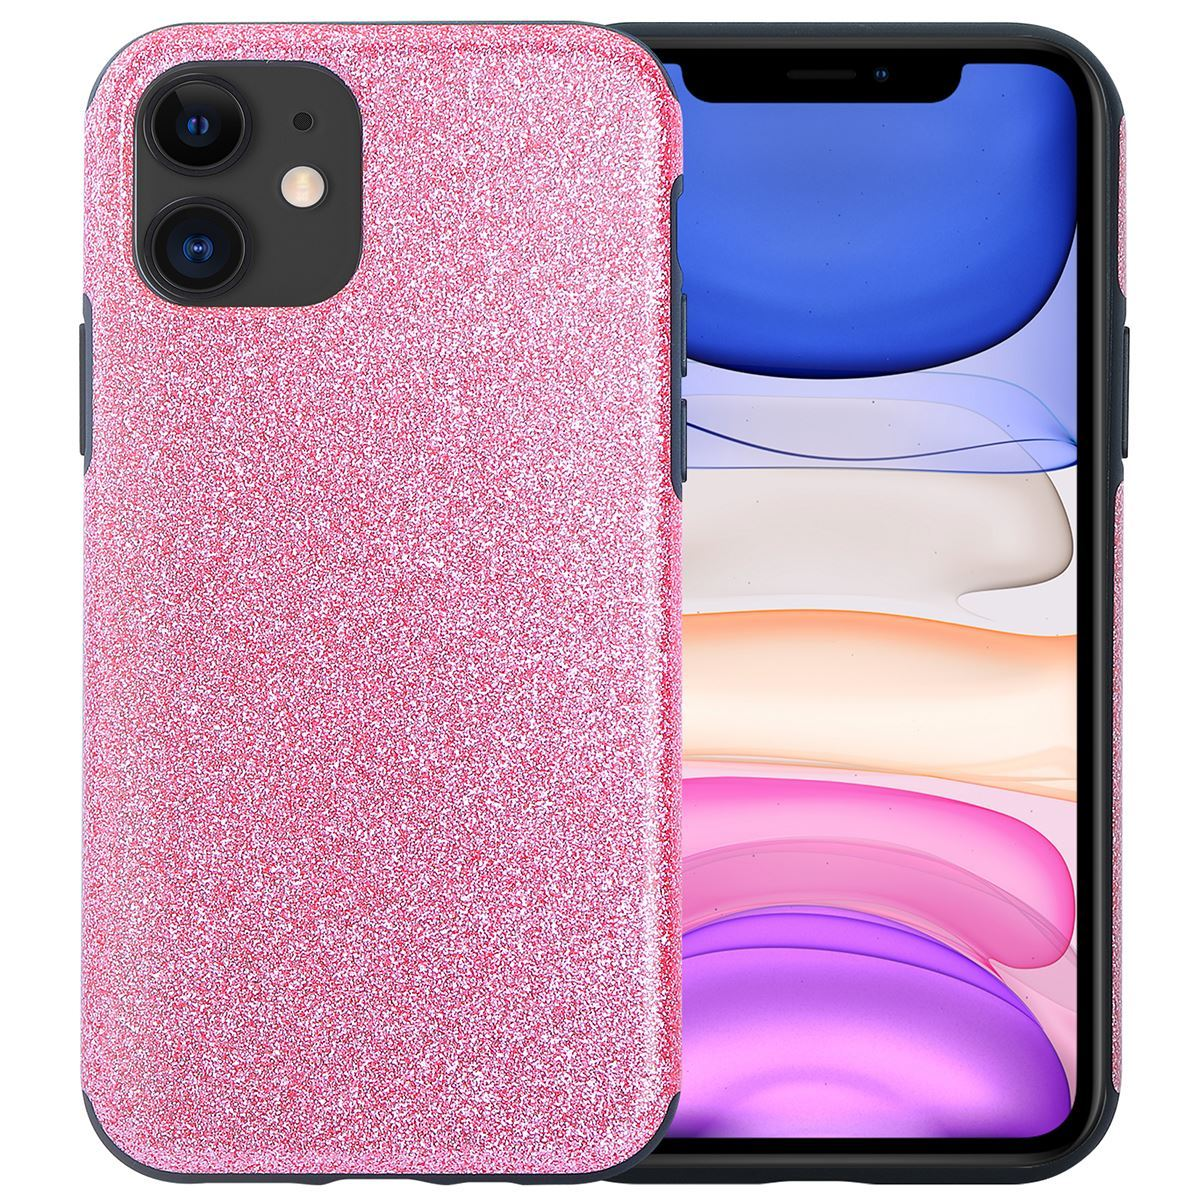 iPhone 11 Case Silicone Glitter Back Cover - Pink